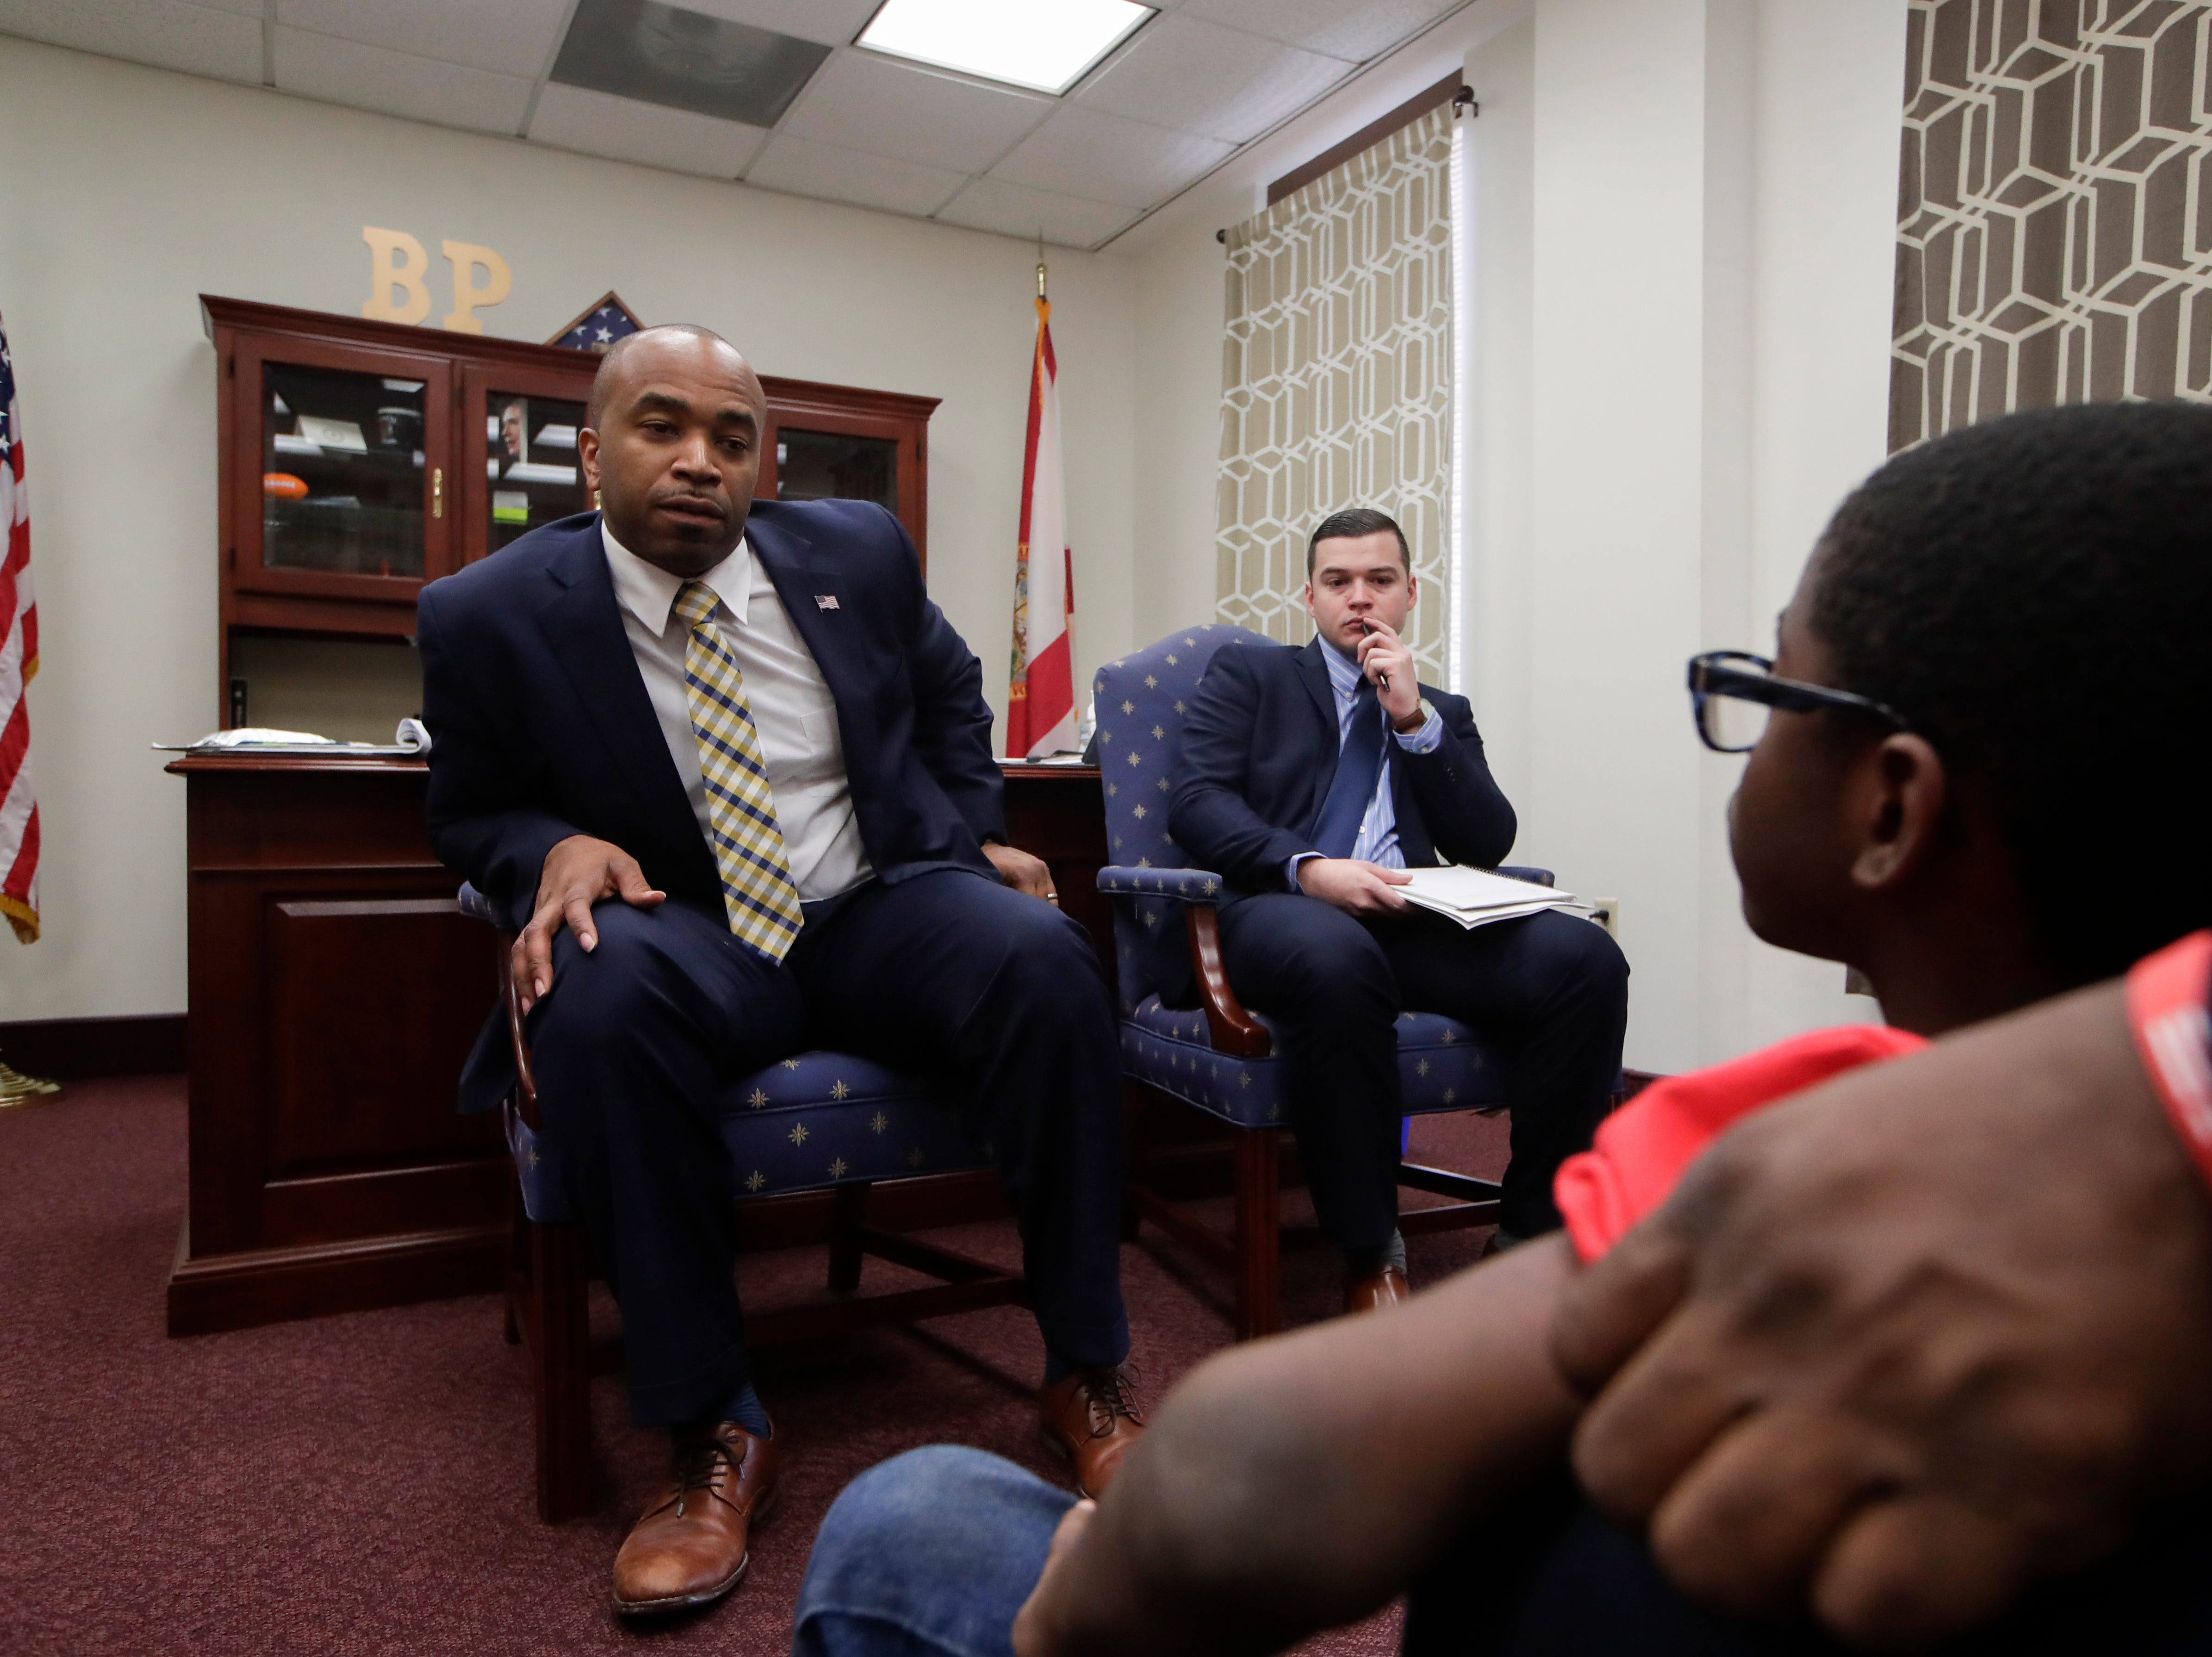 Sen. Bobby Powell talks with Bryce Mckoy, a 9-year-old second grader from Palm Beach County, after Mckoy expressed his fears about going to school after the Marjory Stoneman Douglas shooting last year. His fears prompted his mother, Teisha Mckoy, to join Moms Demand Action and the pair visited the Capitol Wednesday, Feb. 6, 2019 to lobby with over 500 others for stricter gun laws.